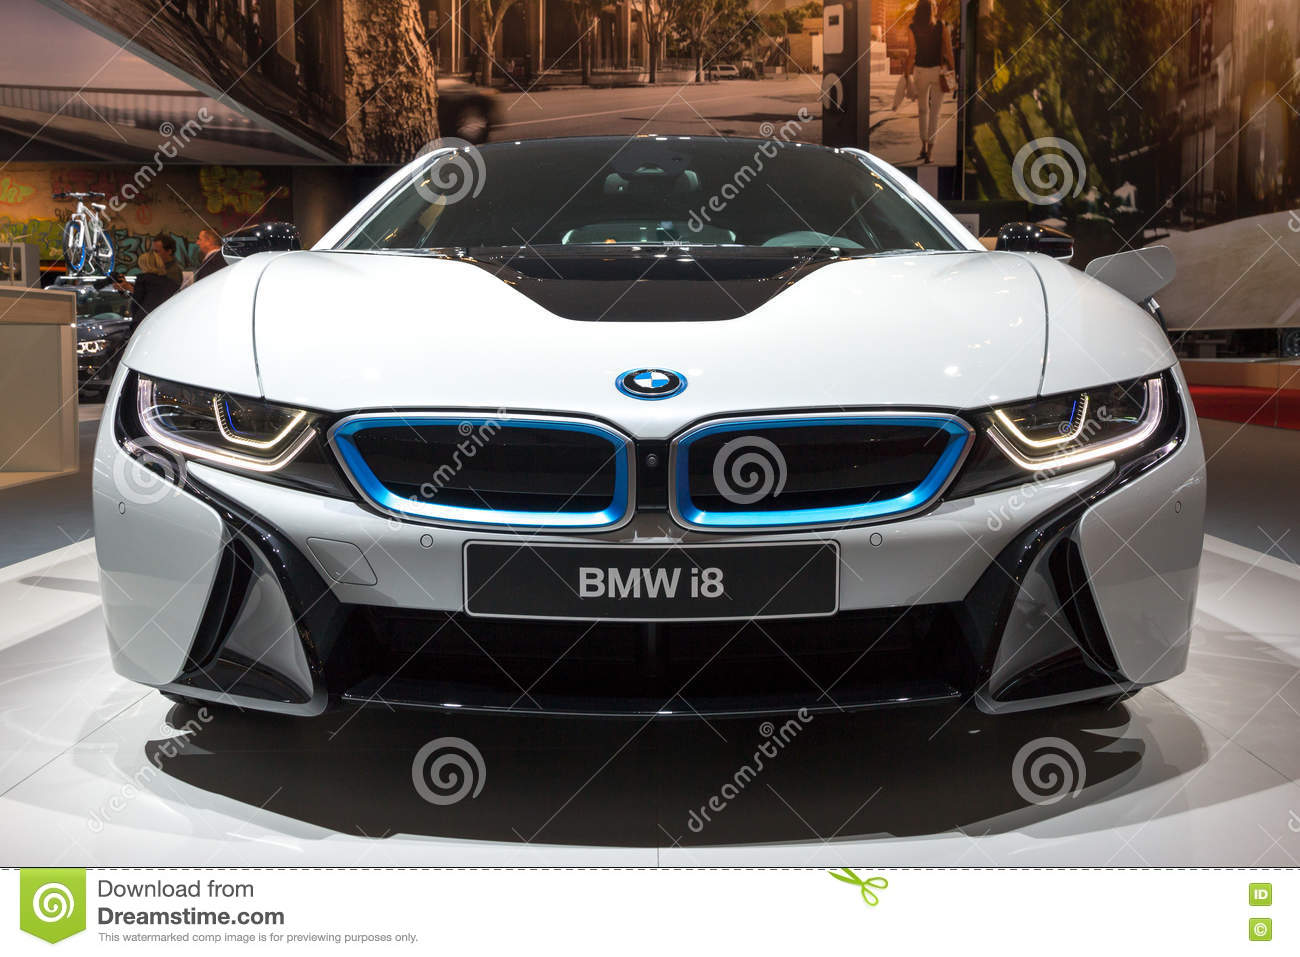 bmw i8 van new cars gallery. Black Bedroom Furniture Sets. Home Design Ideas